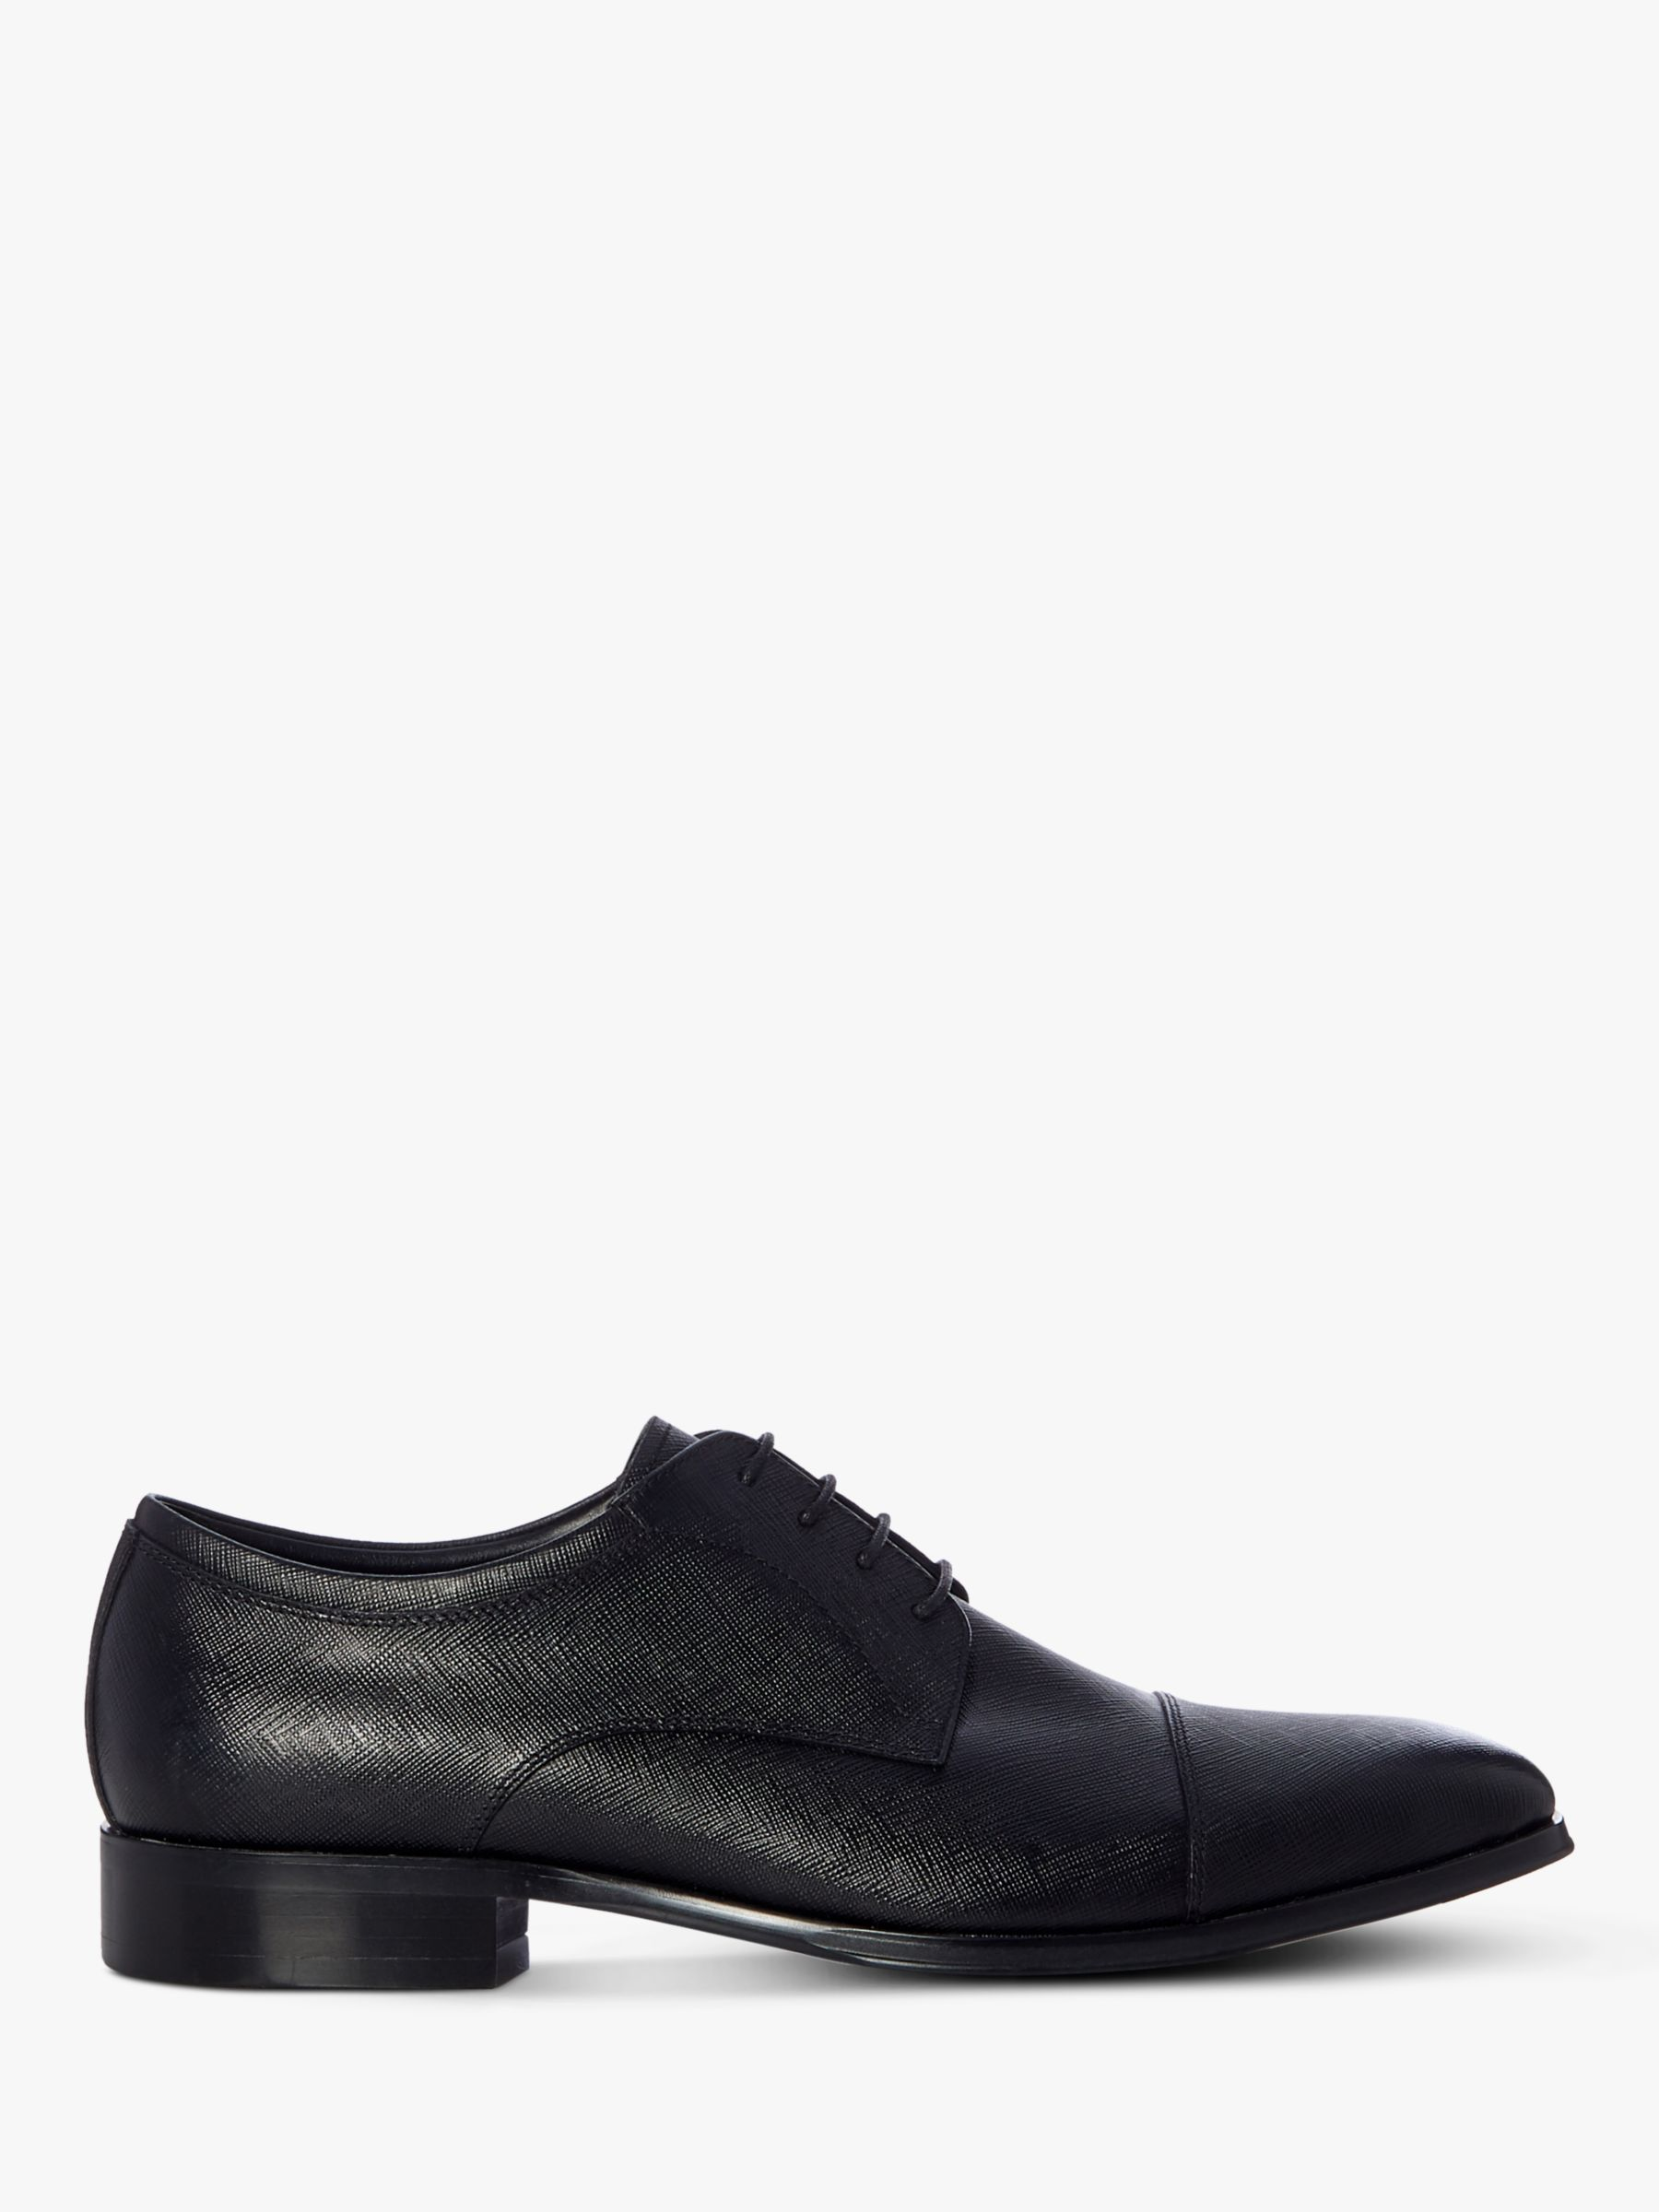 Dune Dune Scribe Leather Toecap Derby Shoes, Black